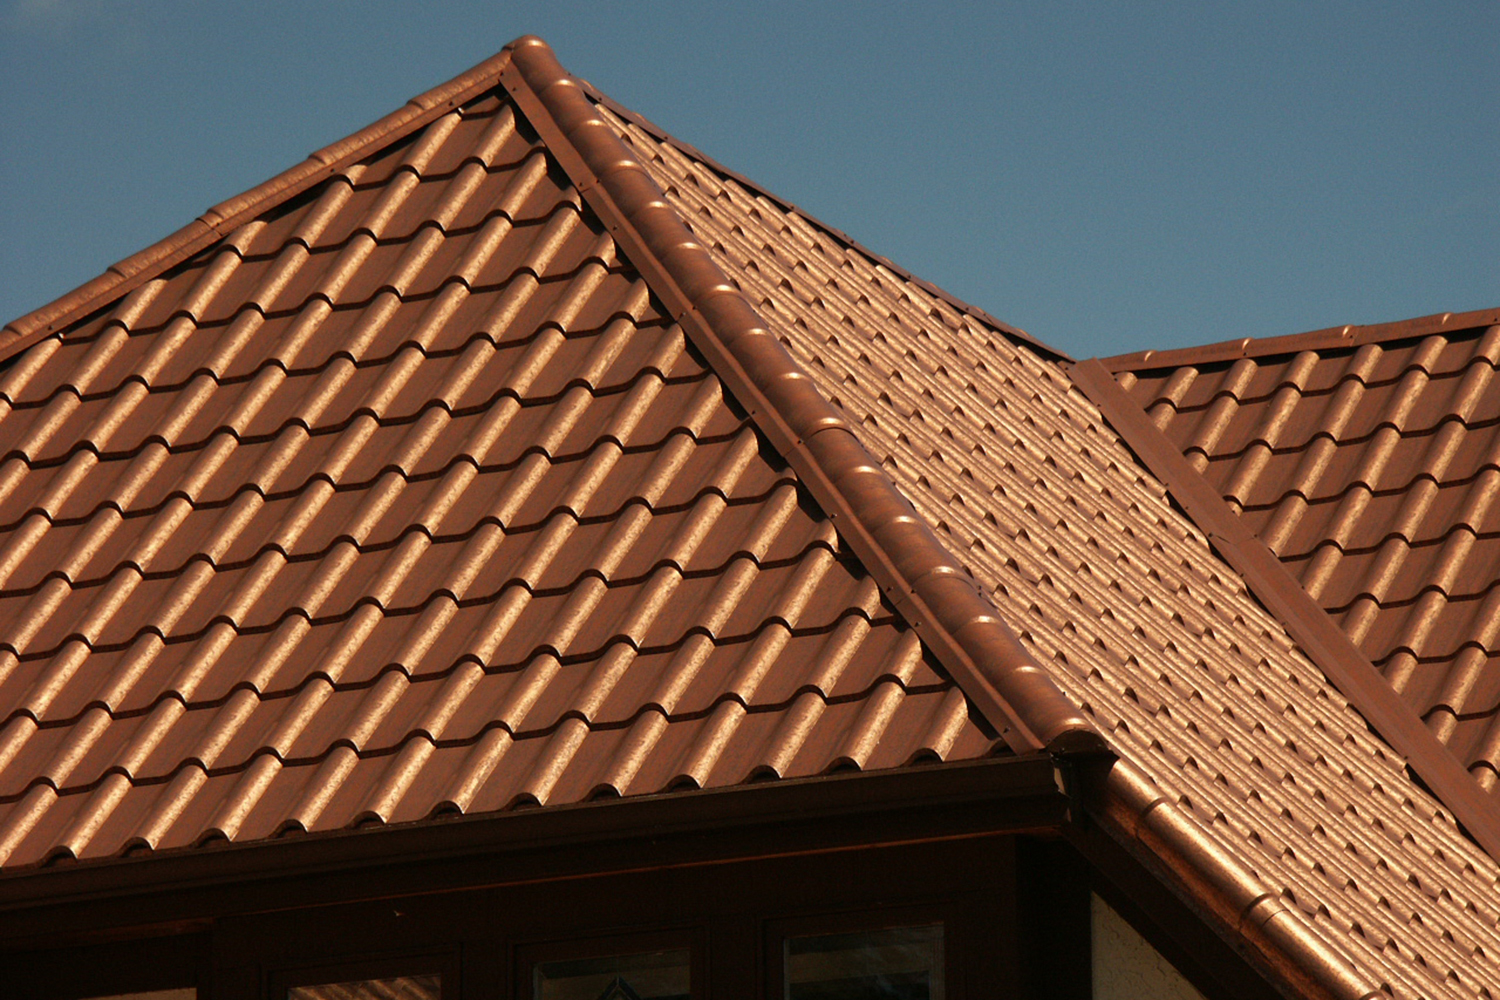 aged copper metal mediterranean tile roof shed roof